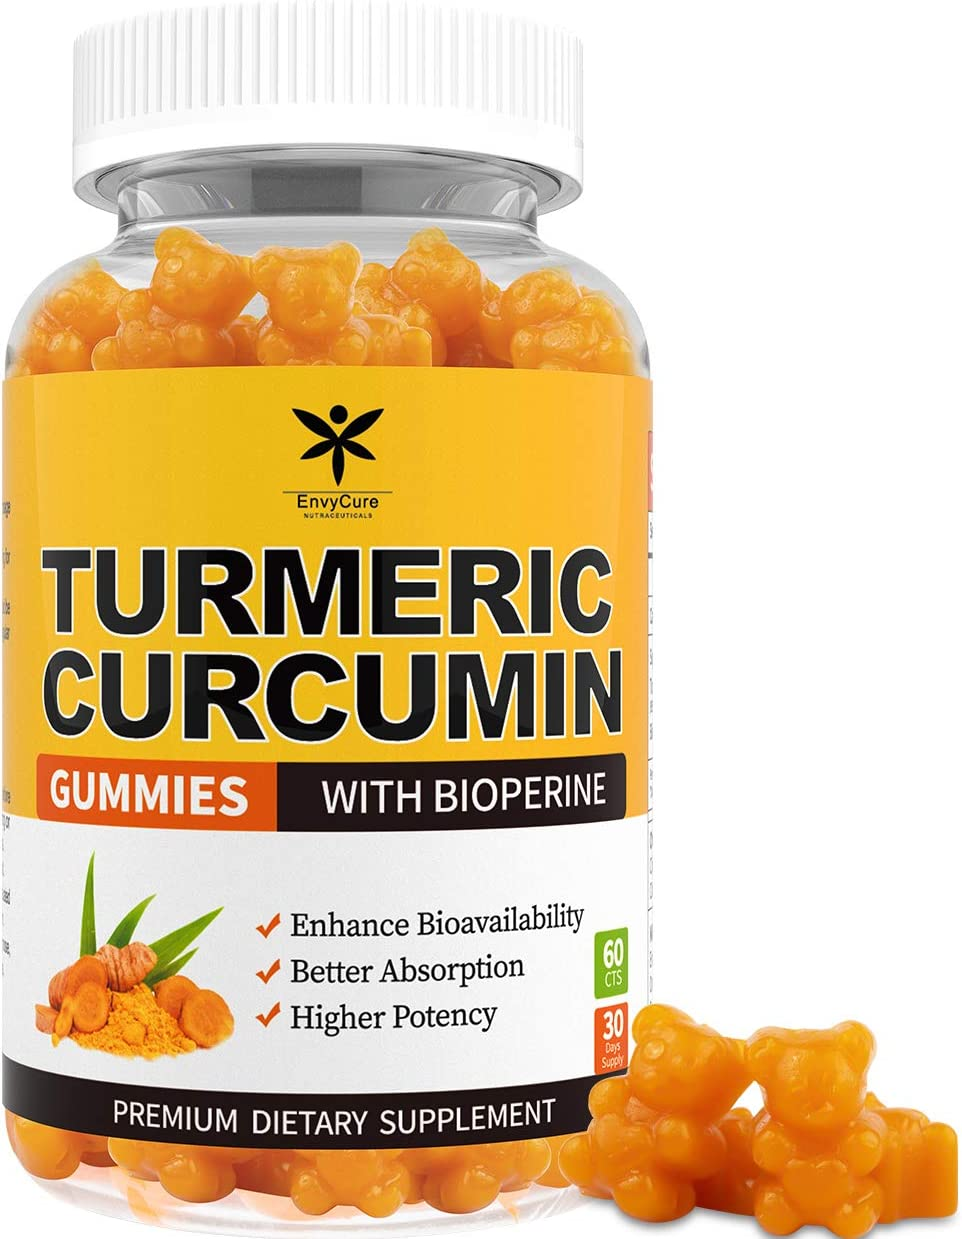 Turmeric Curcumin Gummies with BioPerine for Joint & Inflammation Support, Premium Turmeric Gummies for Adults with 95% Curcuminoids 12000mg, Organic Antioxidant & Anti-inflammatory Supplement